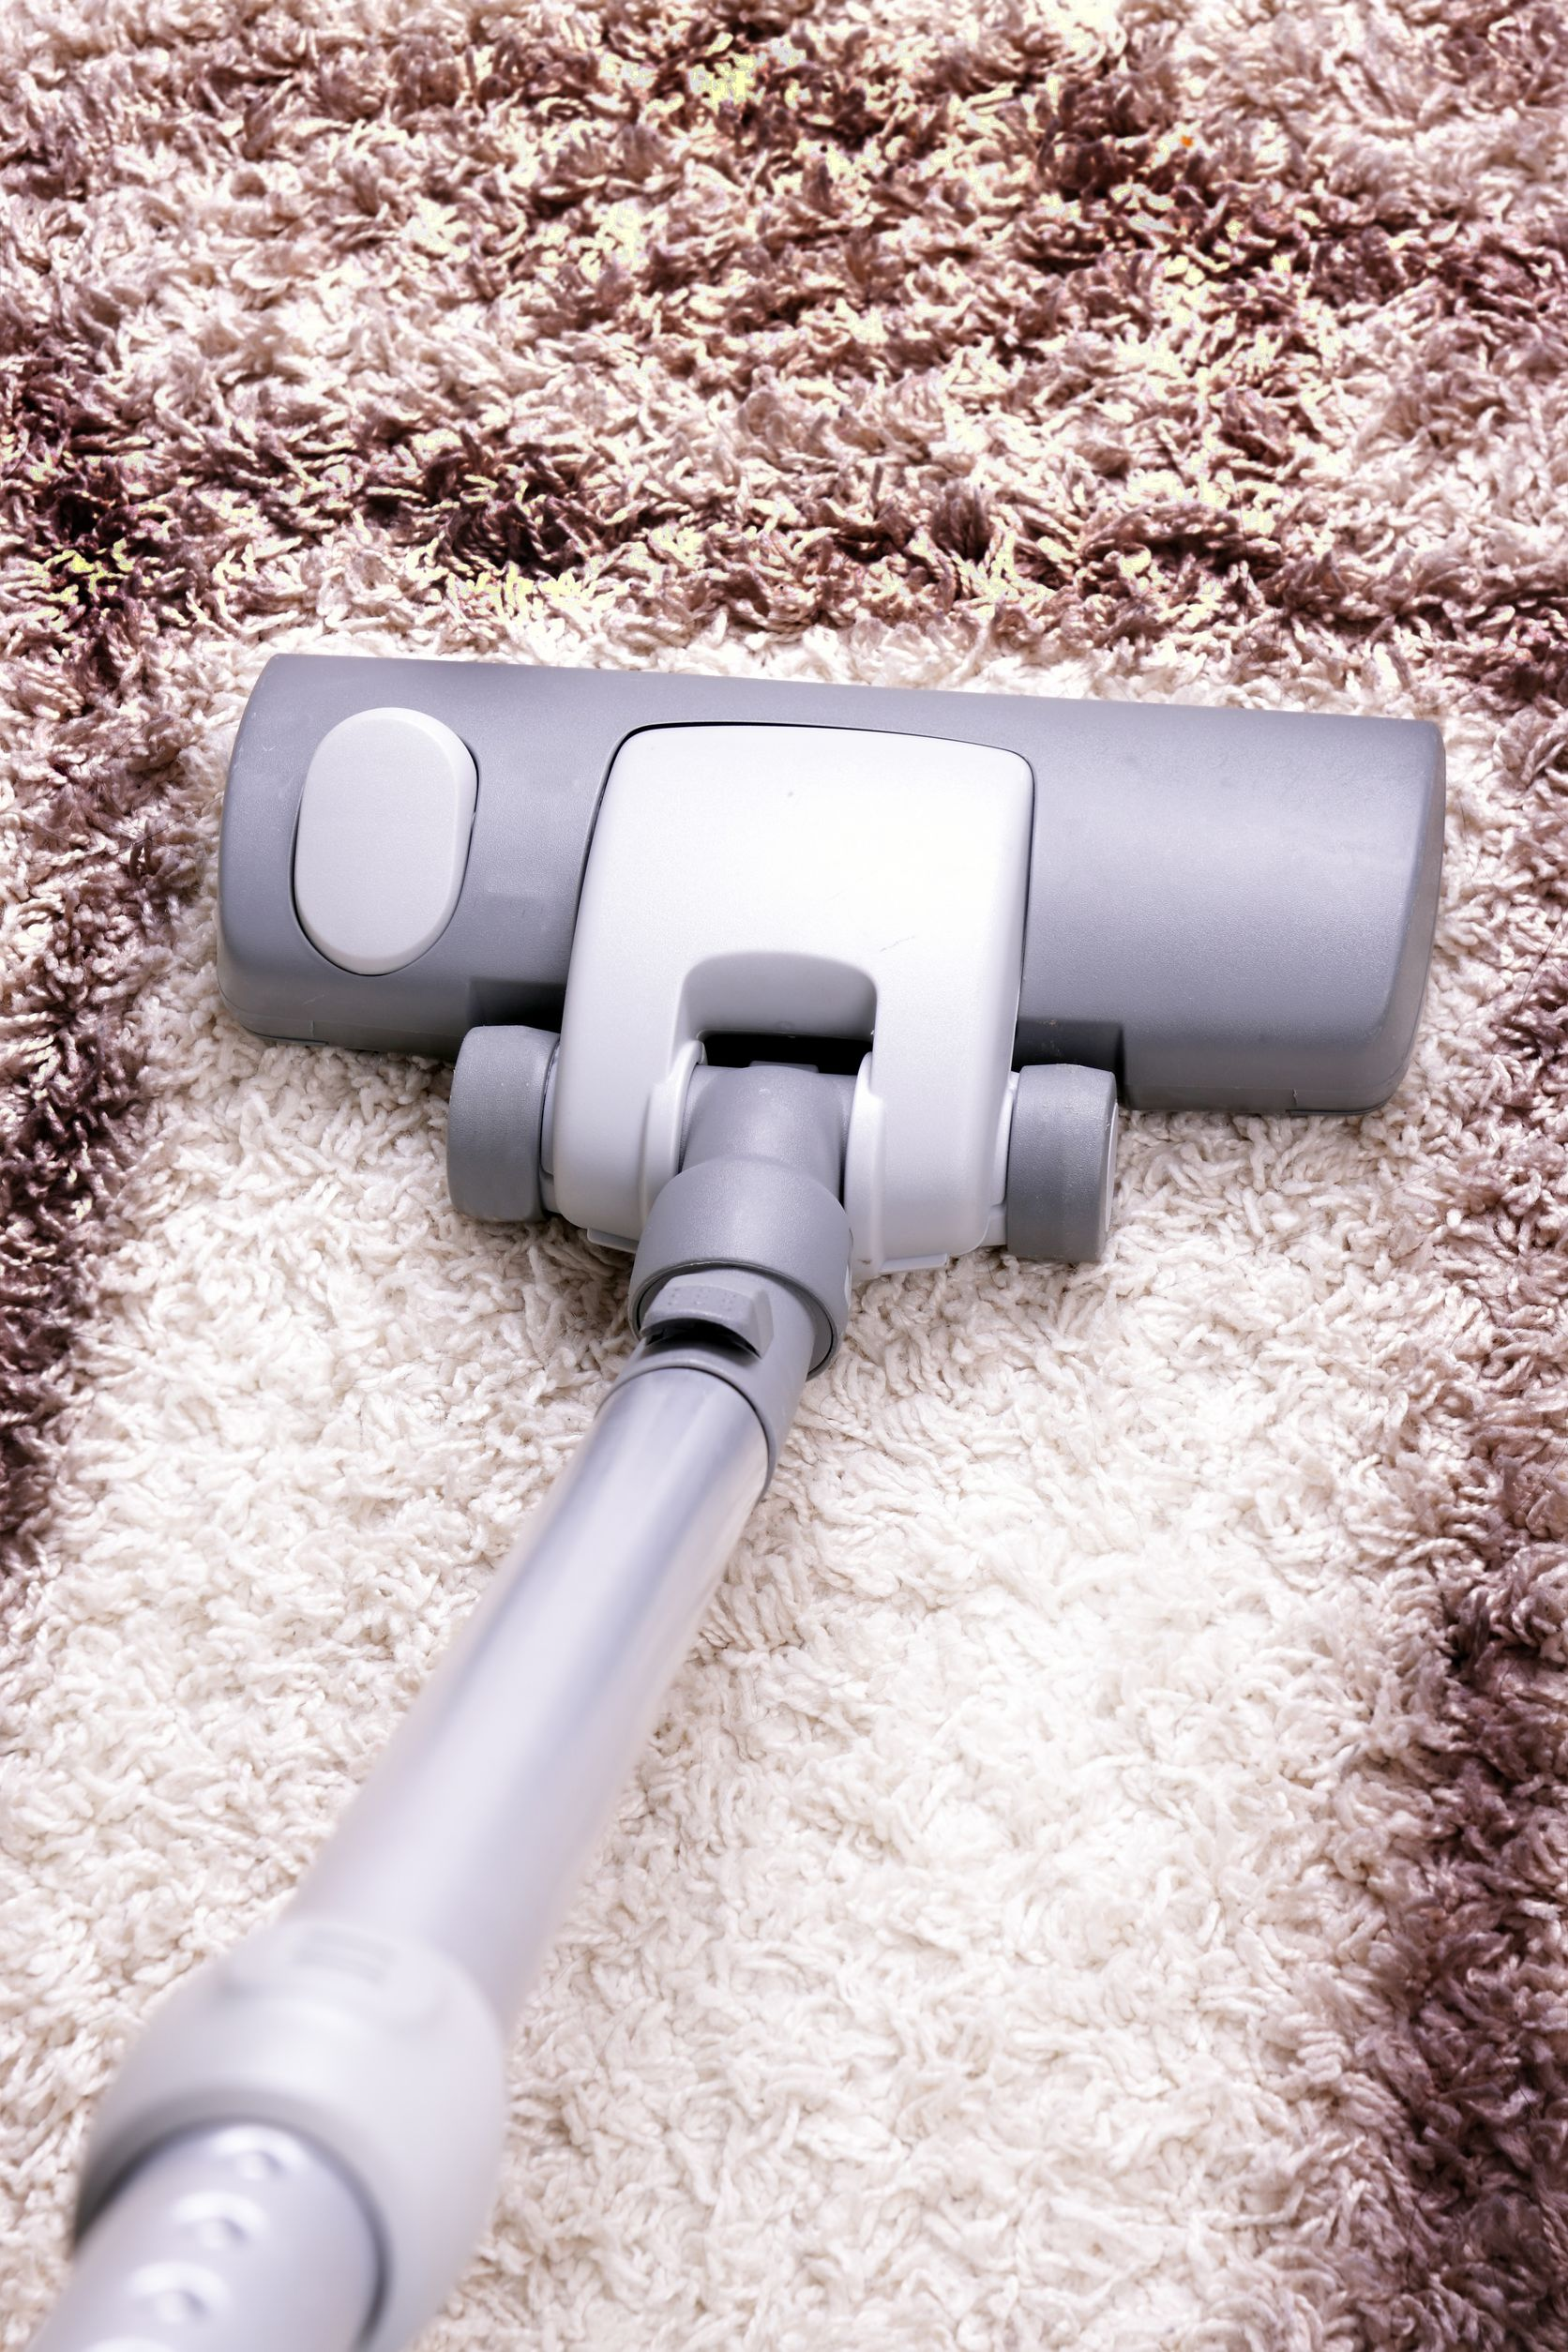 The Carpet Cleaning Supplies in Dallas Commercial Cleaning Companies Need